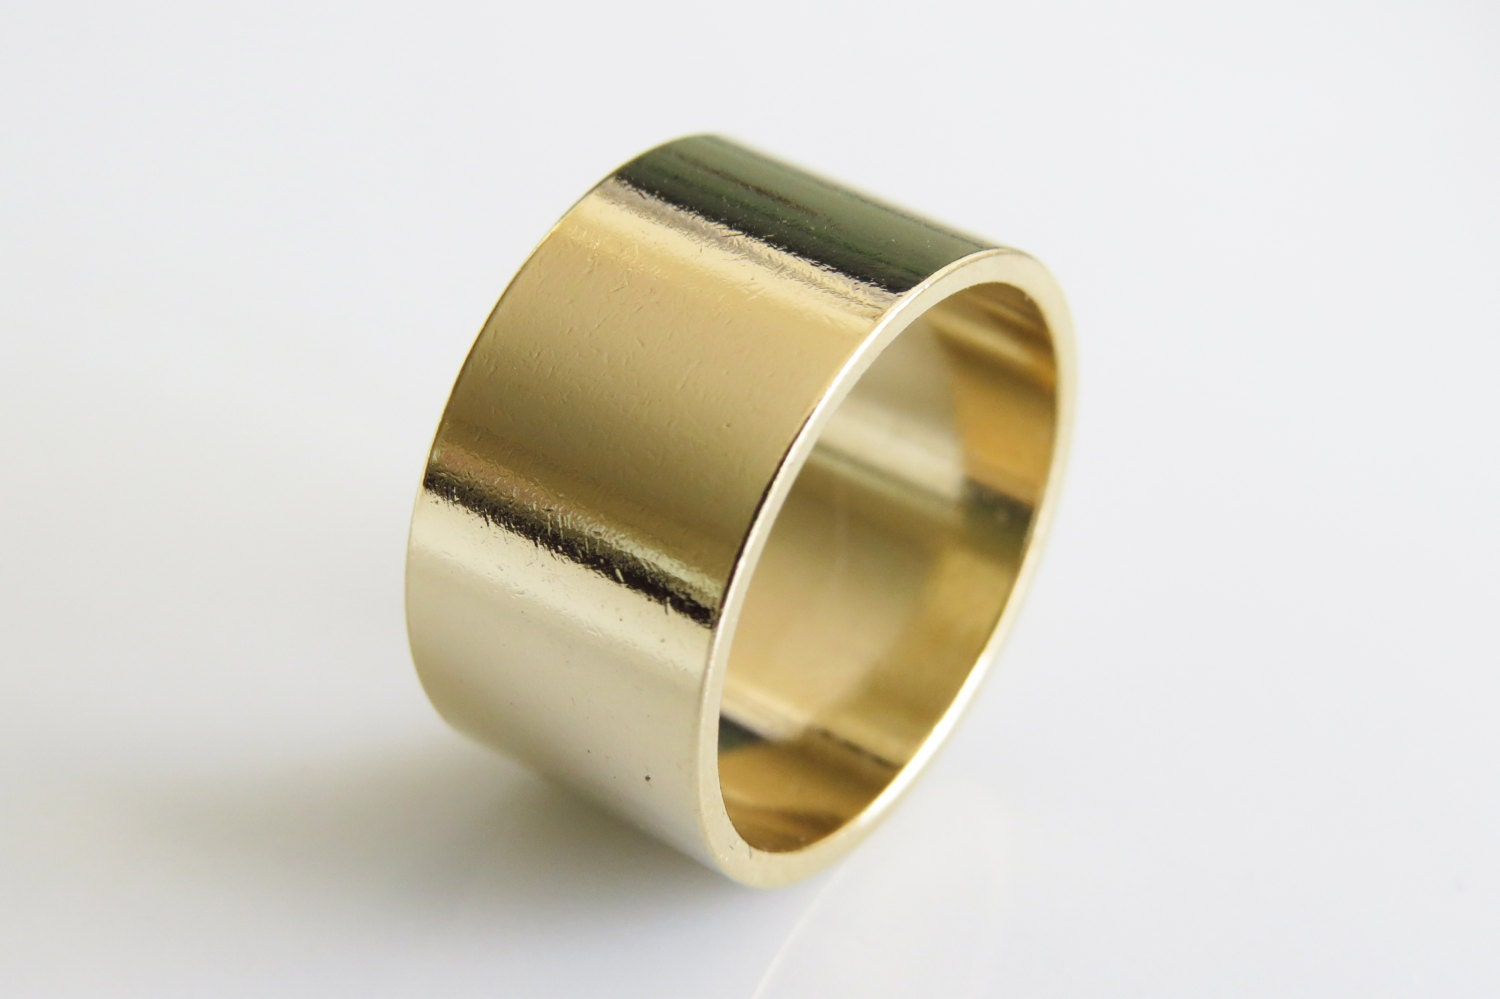 Gold Finger Cuff Ring